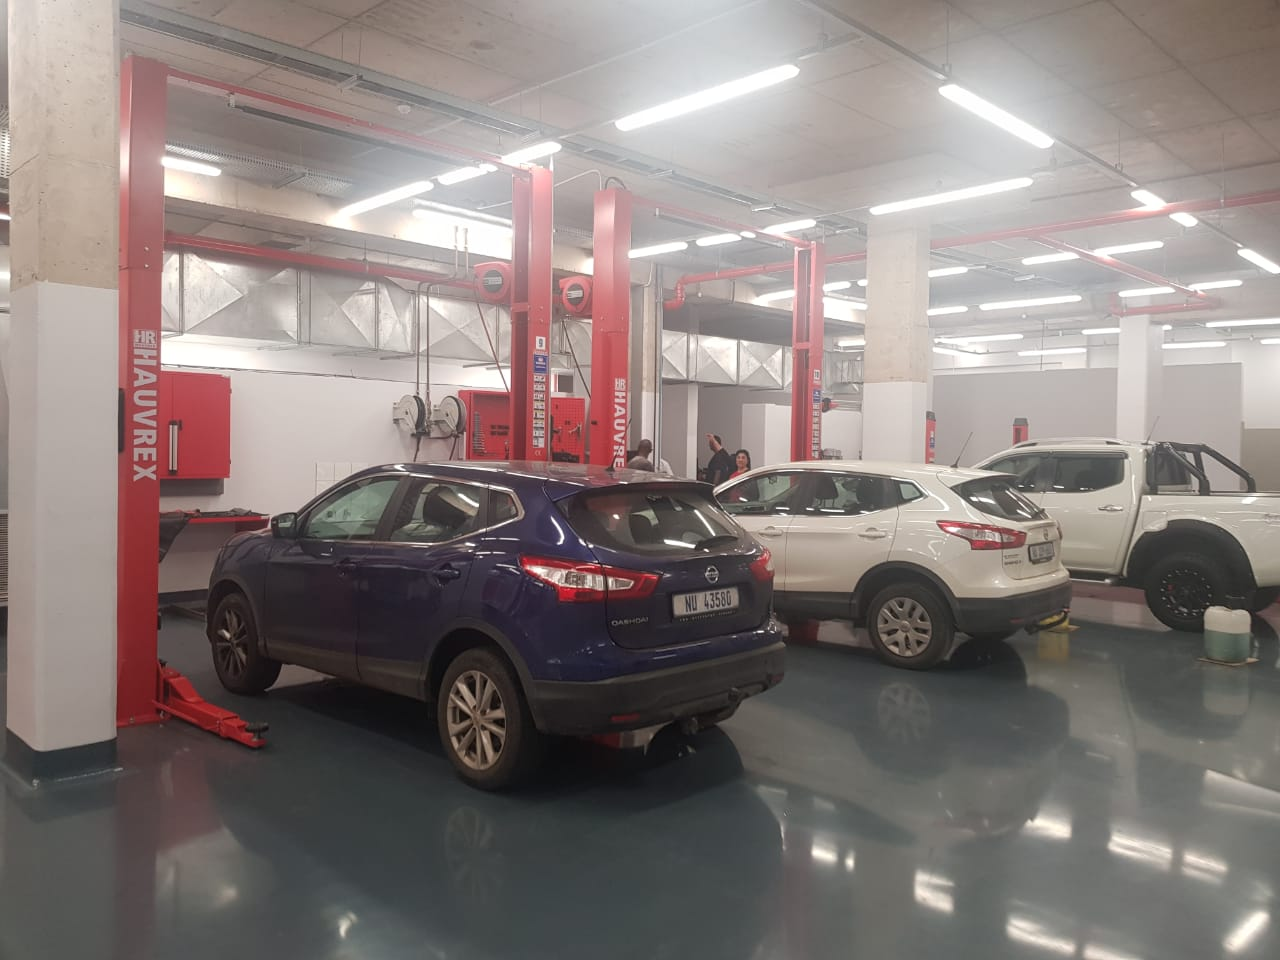 Service-Department-with-car